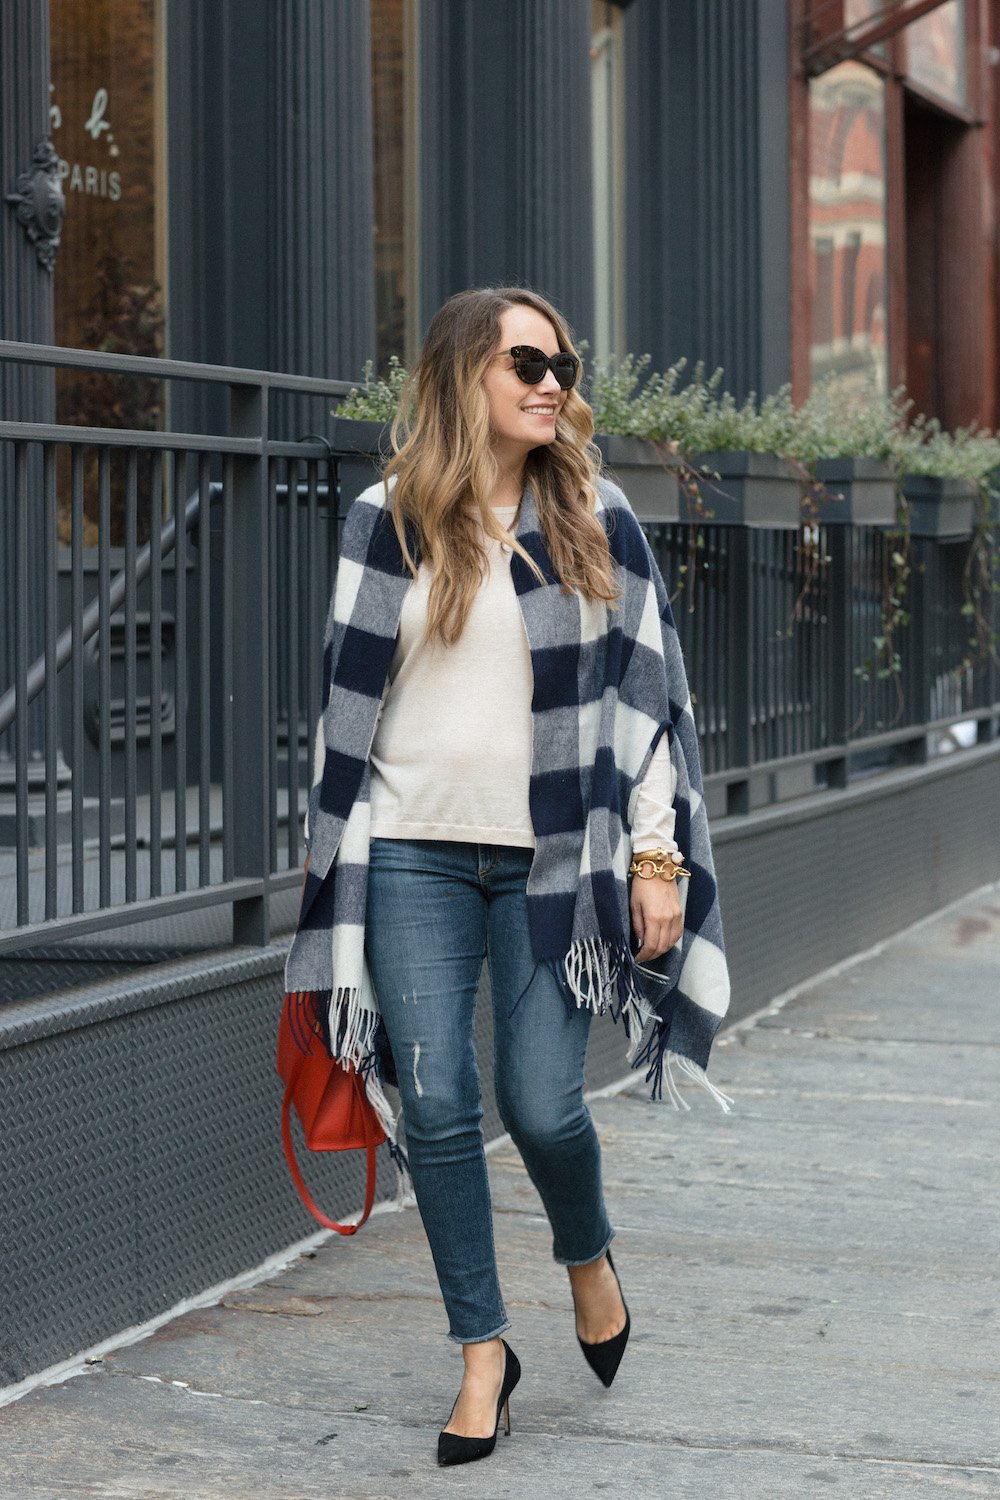 Easy Fall Outfit Ideas: J.Crew Gingham Cape, Joie Marianna Sweater, Rag & Bone Frayed Skinny Jeans - Grace Atwood, The Stripe